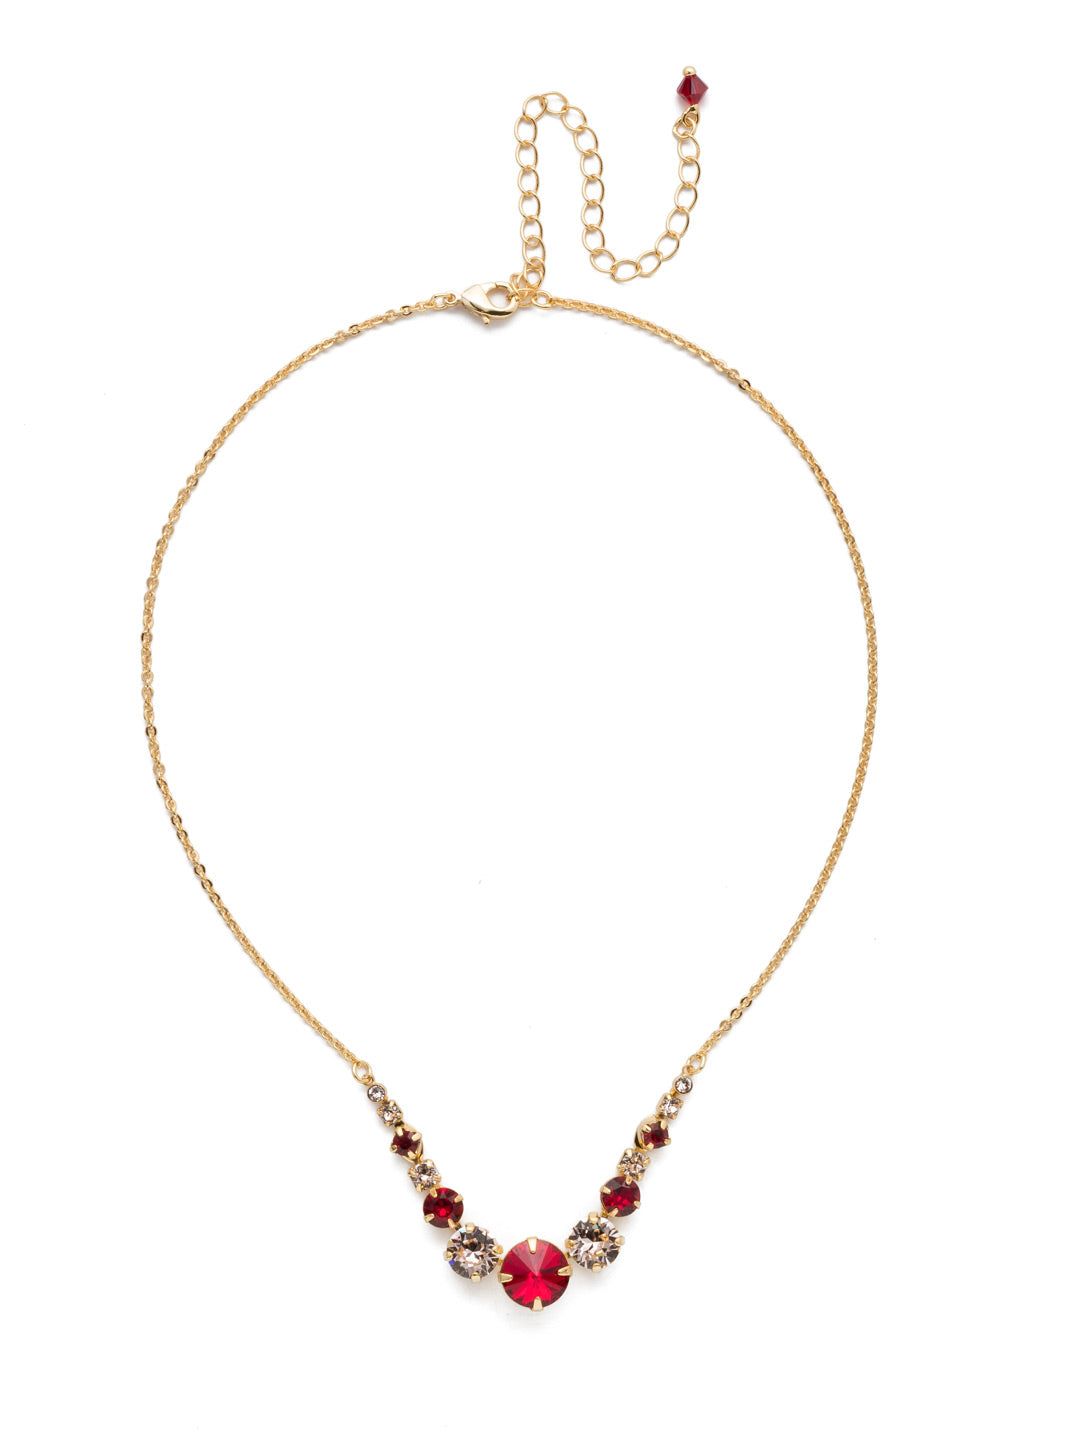 Delicate Round Tennis Necklace - NCQ14BGSRC